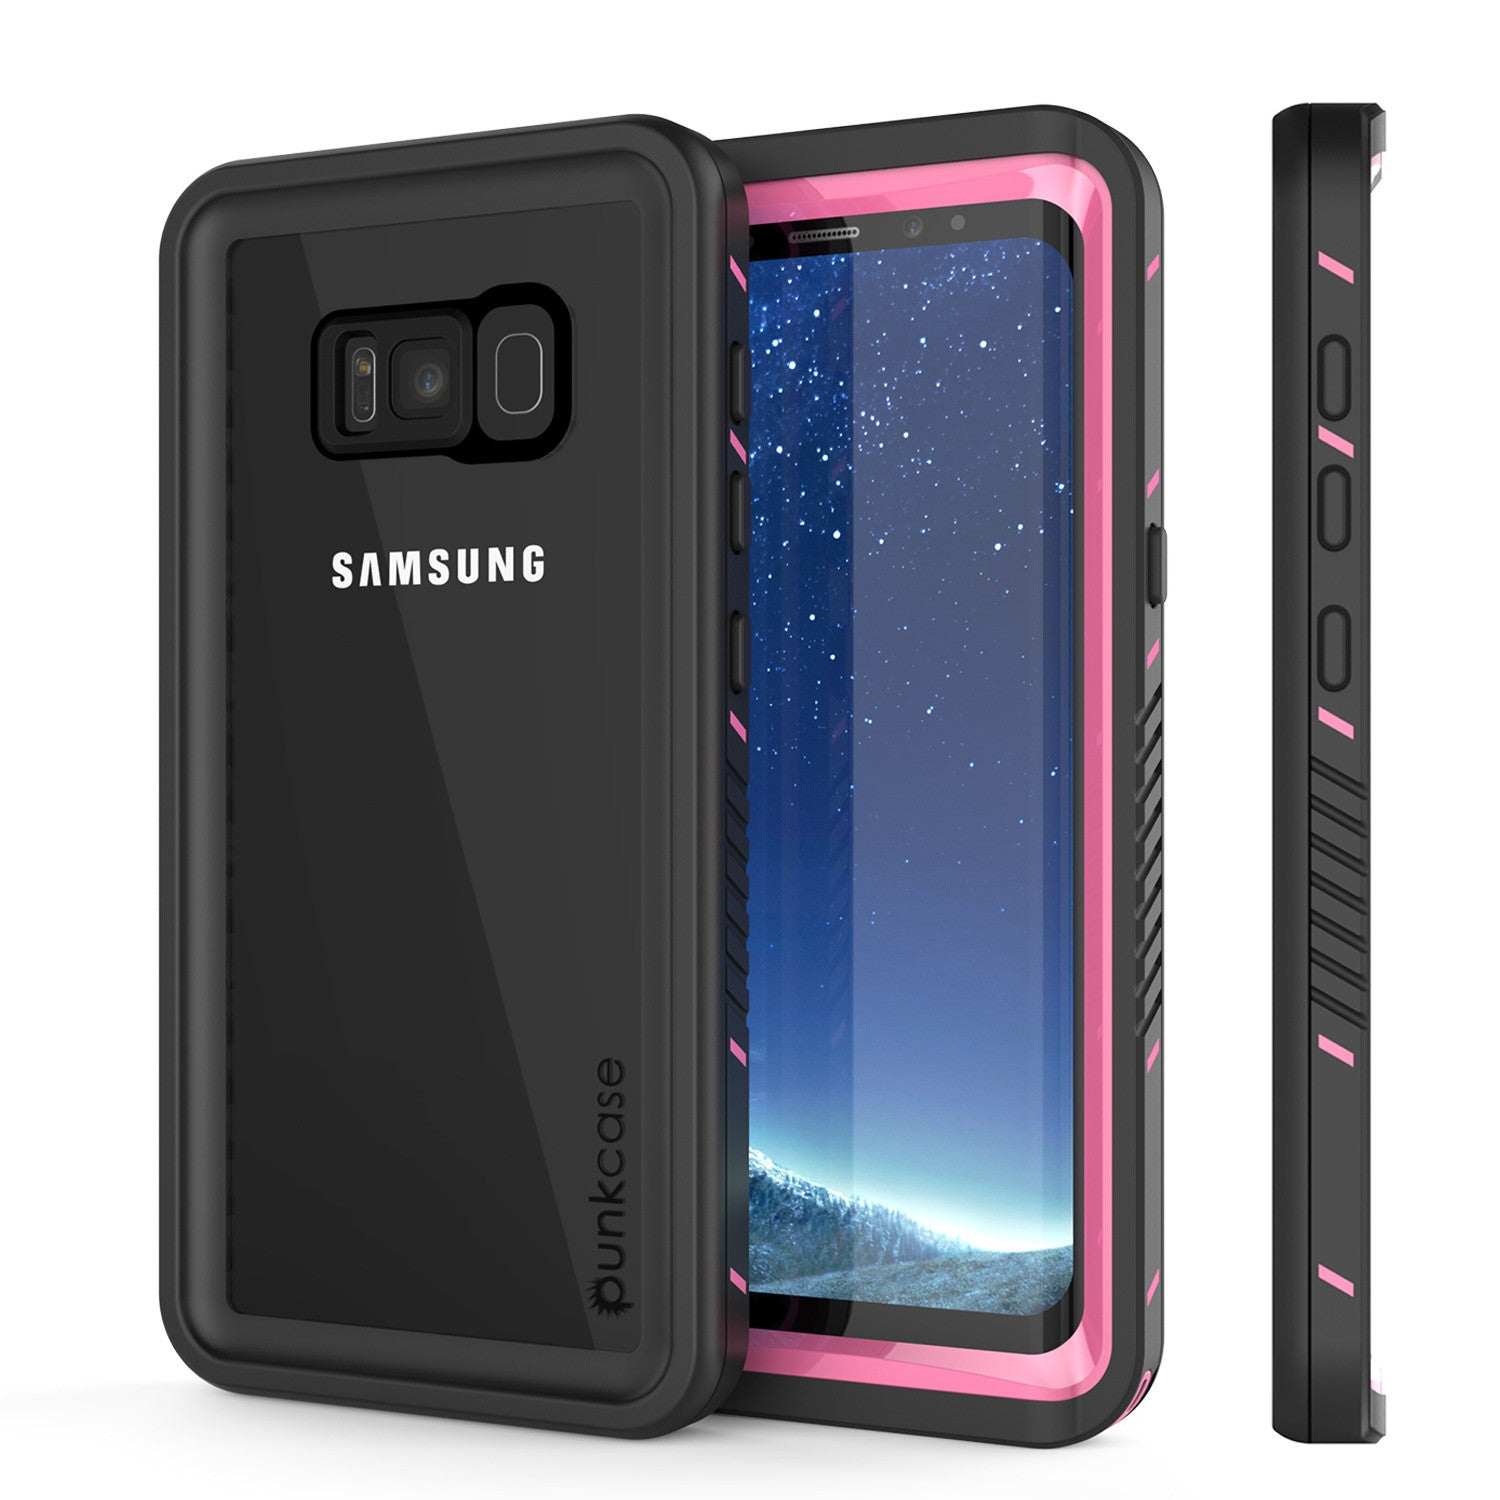 Galaxy S8 PLUS Waterproof Case, Punkcase [Extreme Series] Slim Fit, Armor Cover W/ Built In Screen Protector for Samsung Galaxy S8+ [Pink]